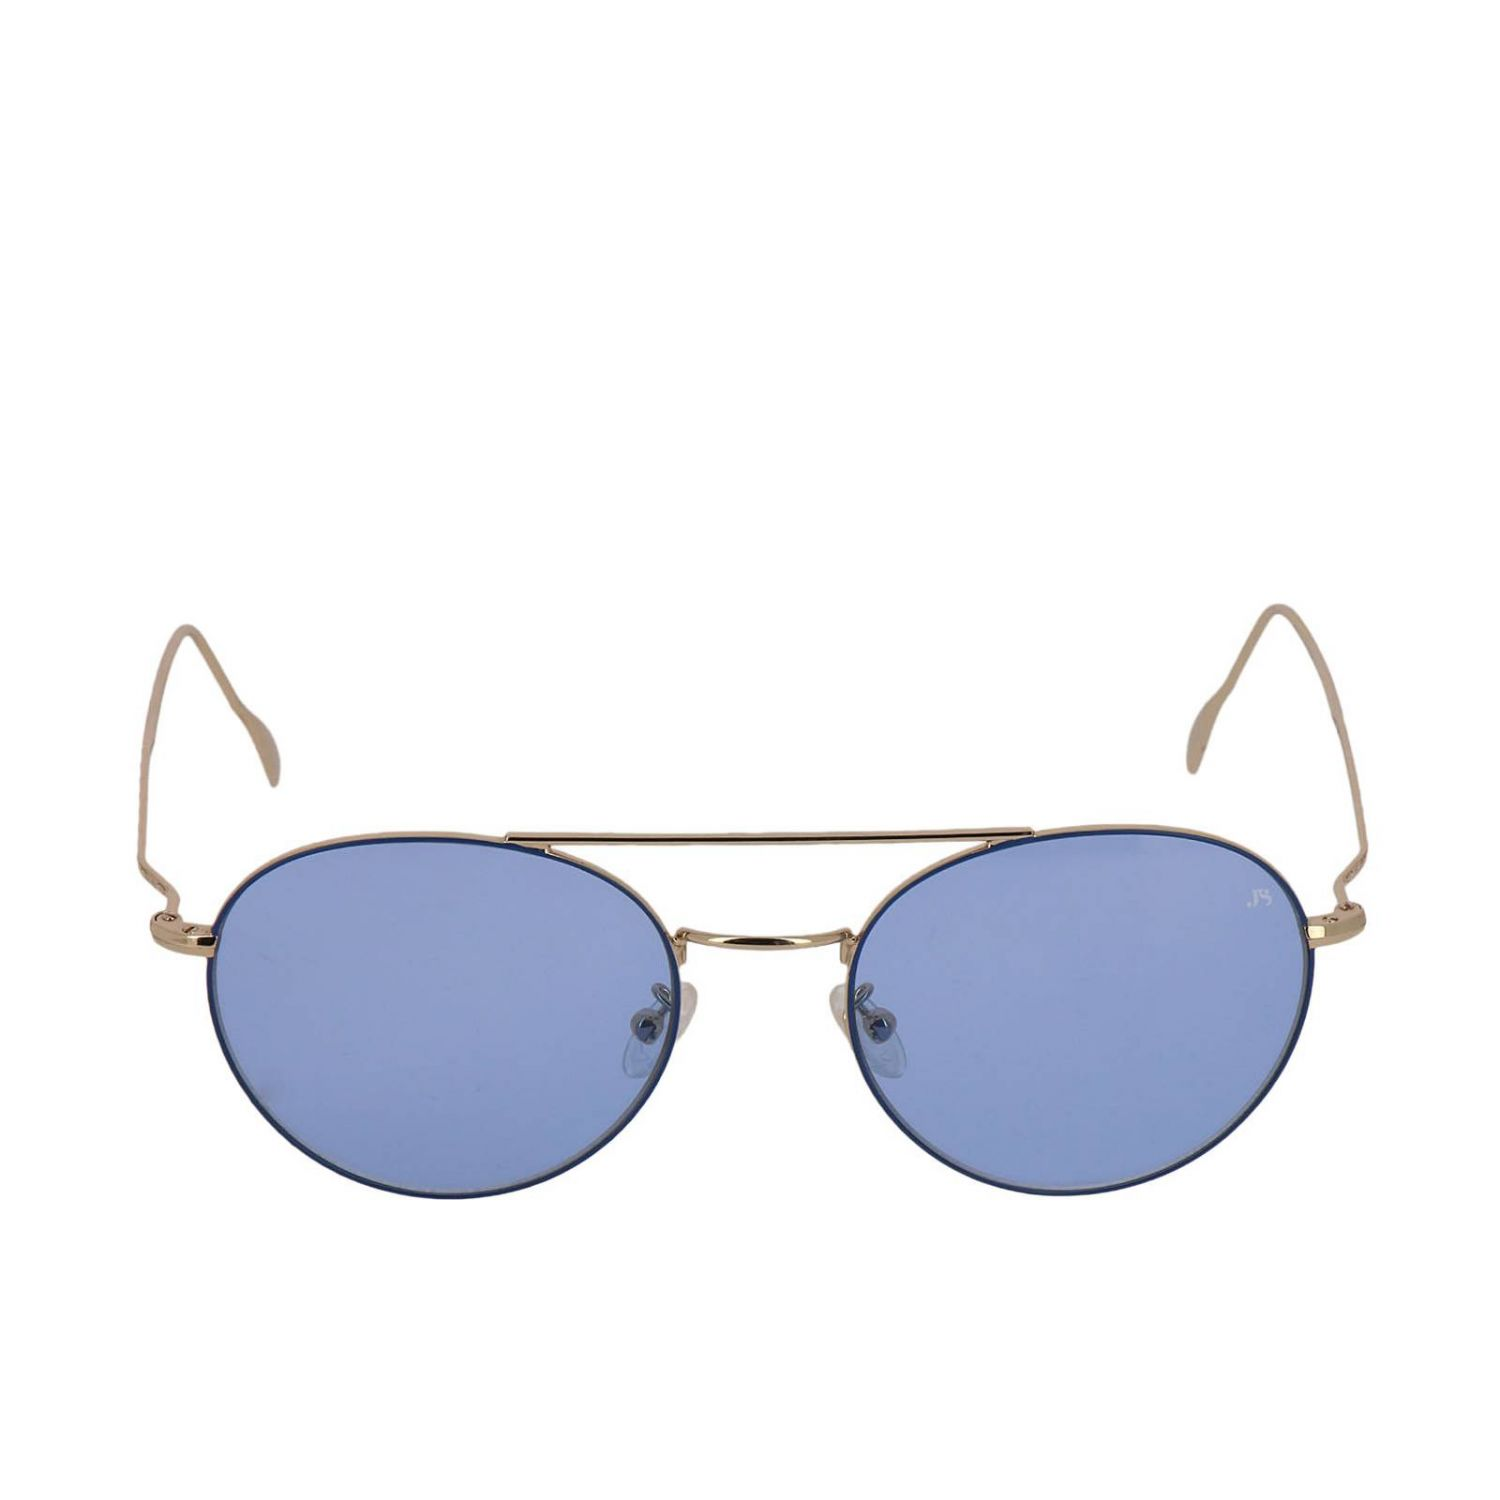 Eyewear men Joy Star blue 2